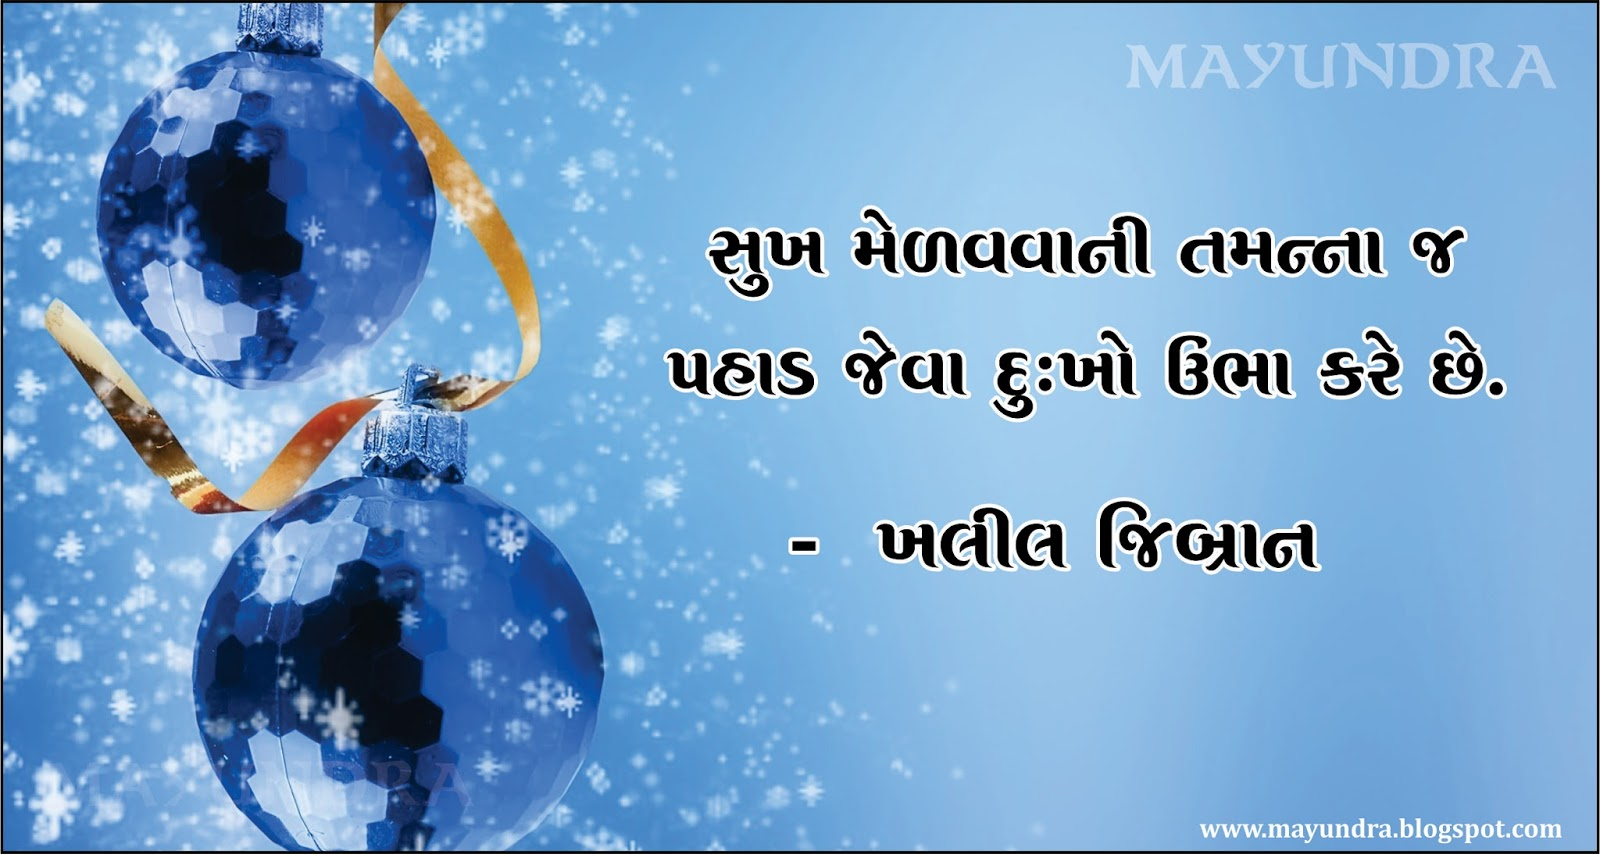 Gujarati Quotes Khalil Jibran Quotes India Quotes Health Tips